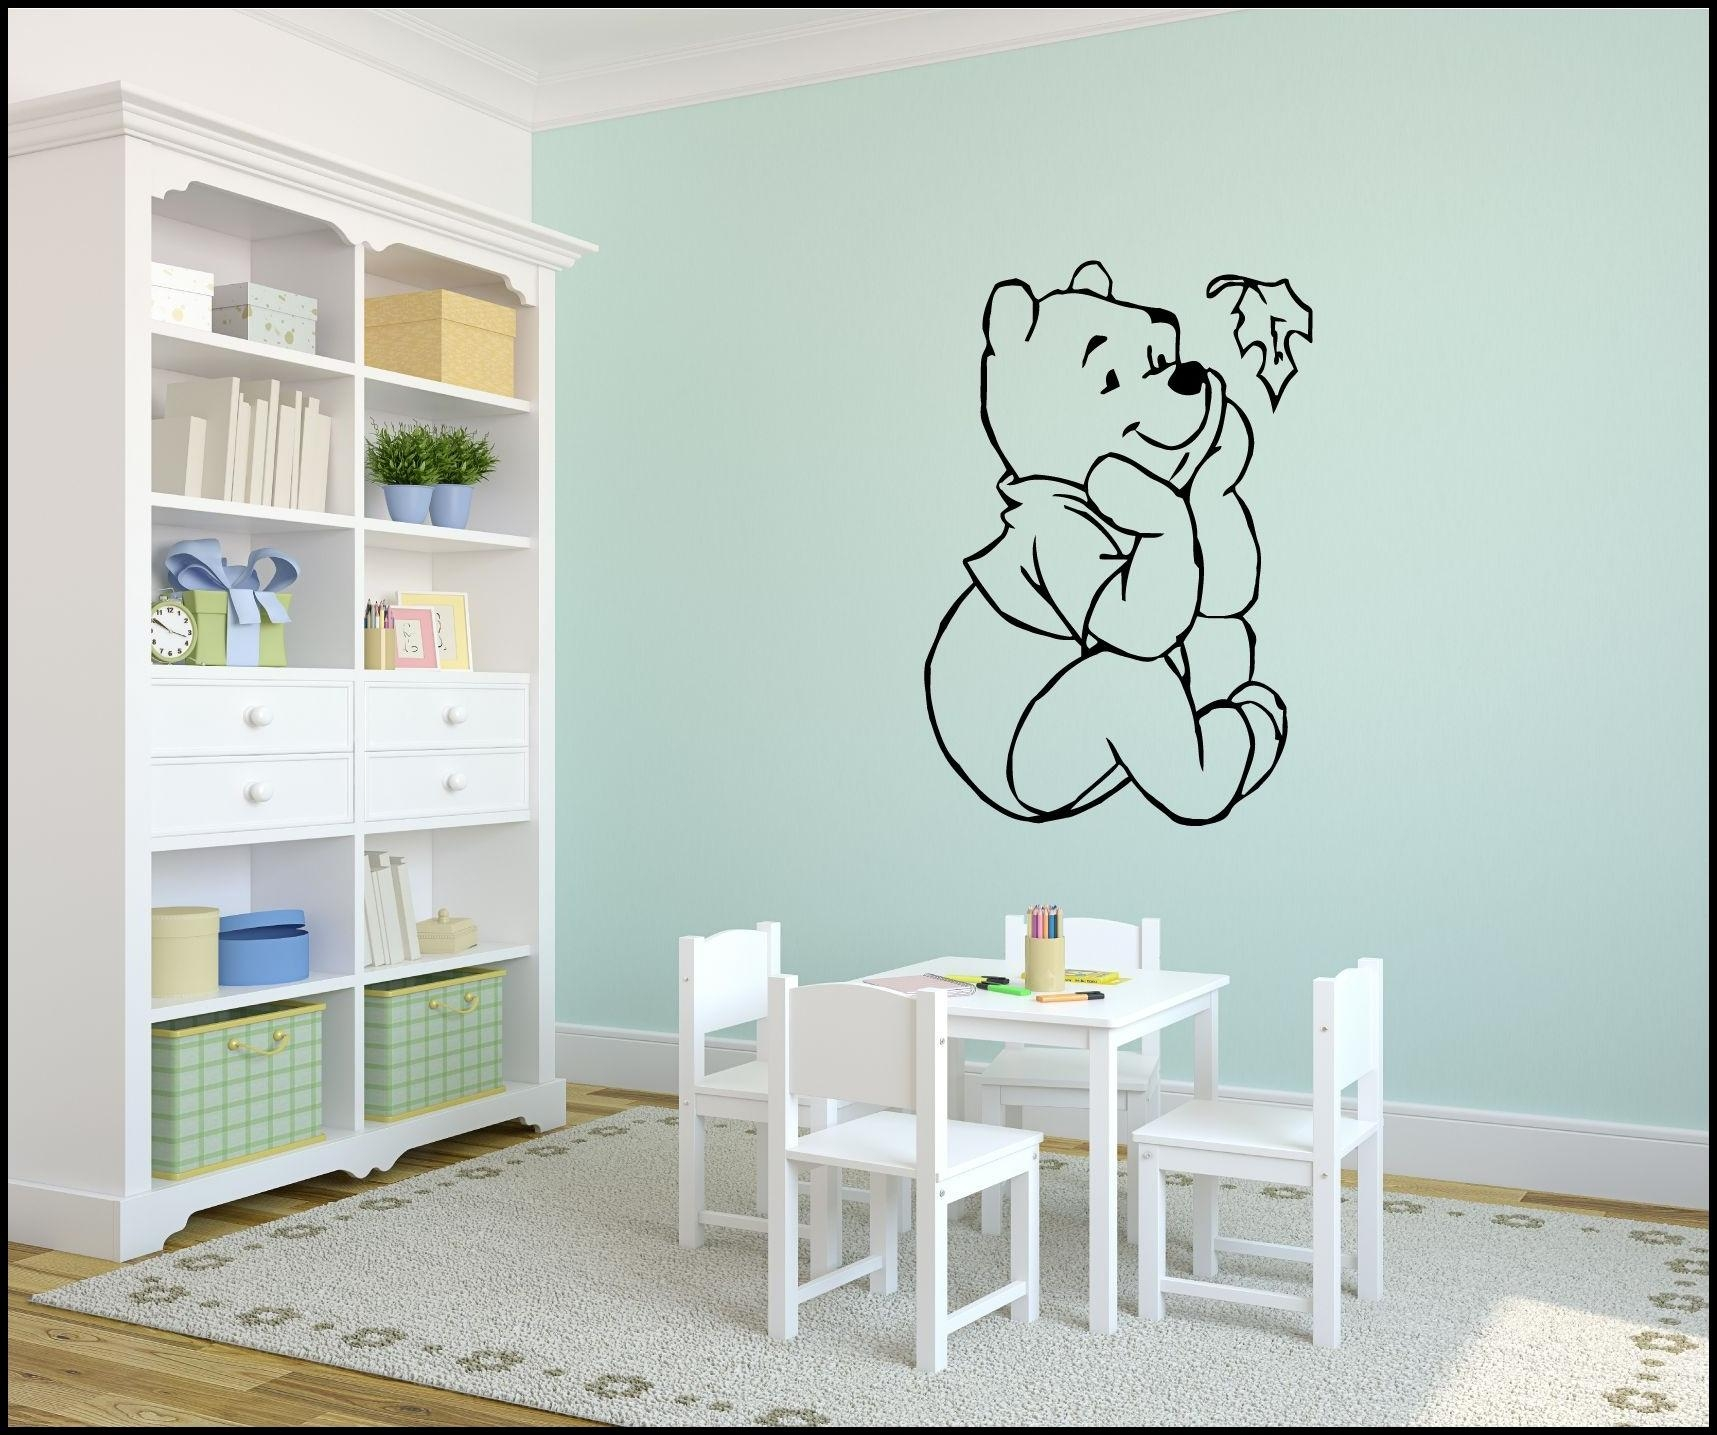 Best Winnie The Pooh Wall Decals Ideas : Winnie The Pooh Wall Regarding Winnie The Pooh Wall Decor (View 14 of 20)